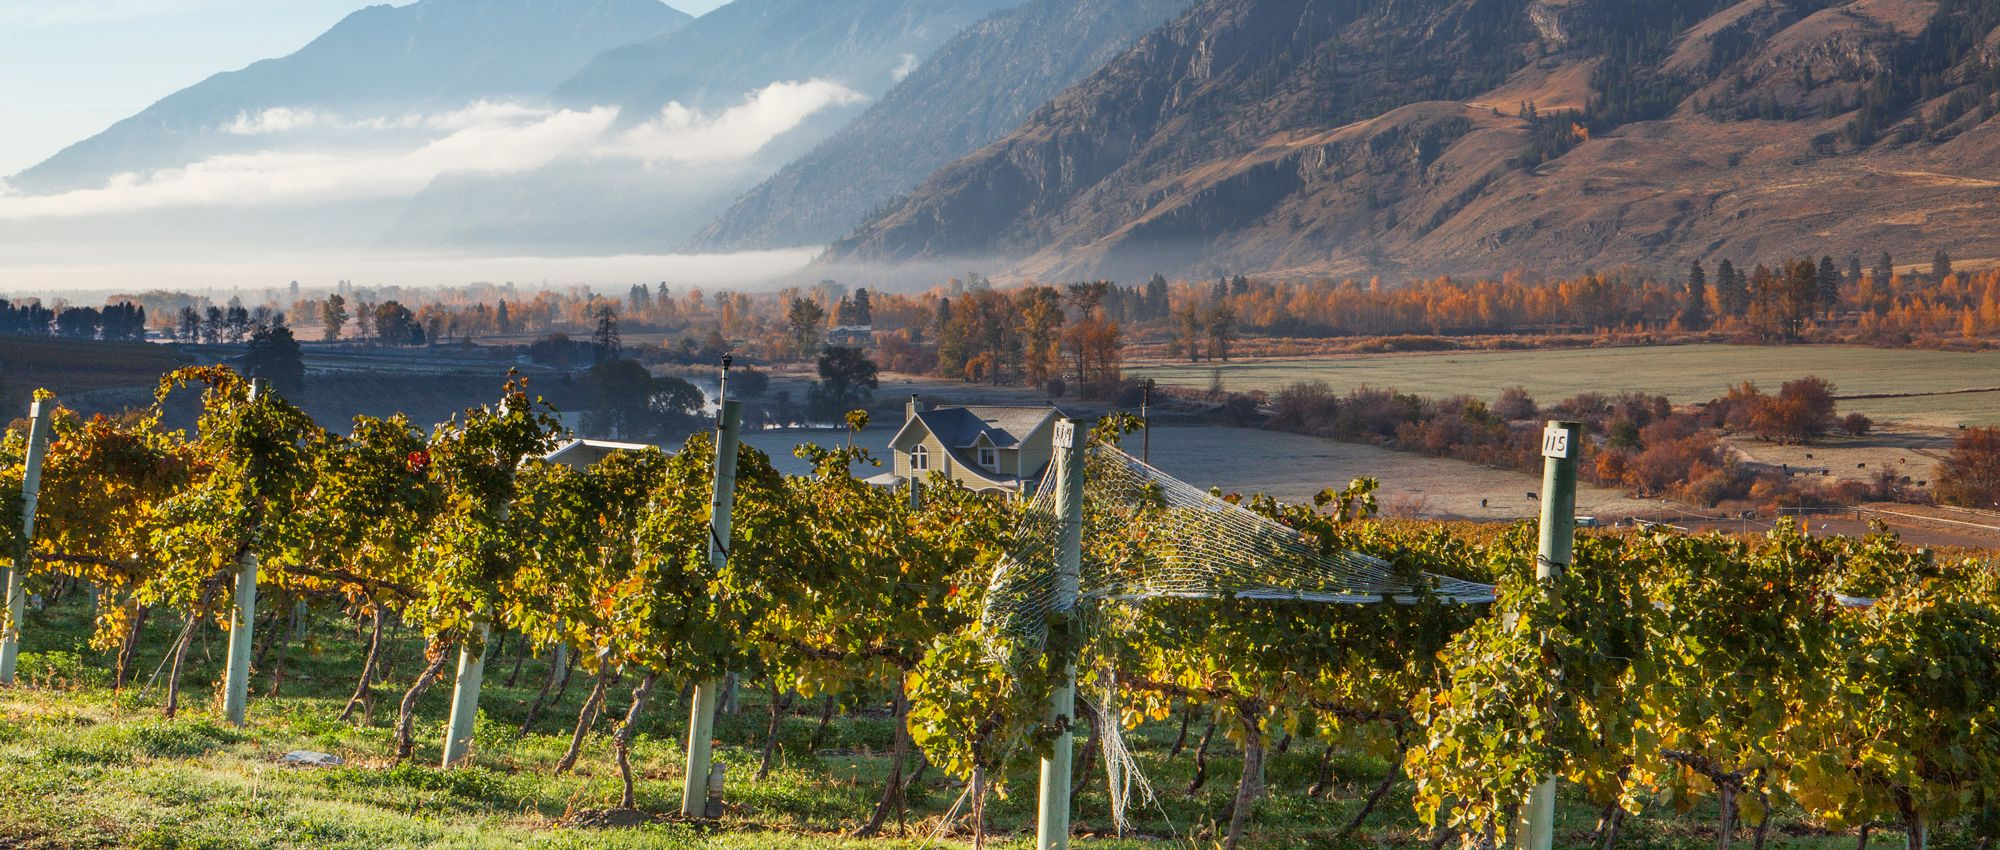 New for 2019, Explore the   SIMILKAMEEN VALLEY